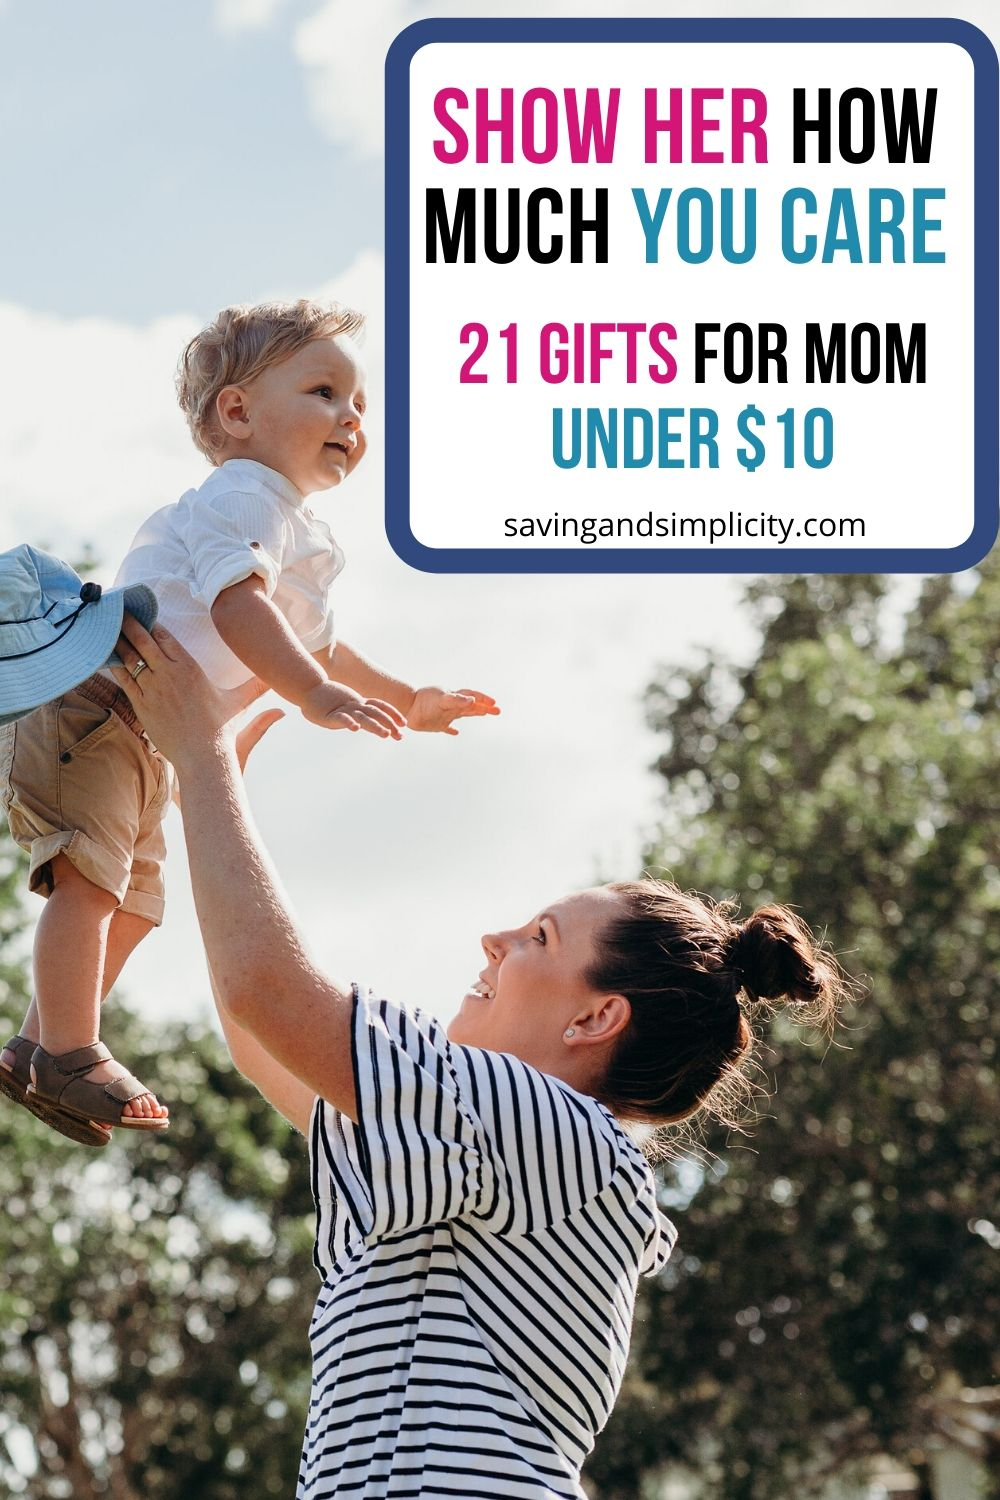 21 gifts for her under $10. Mother's Day, Christmas gifts, hostess gifts and more. Keep your holidays on budget with these amazing gifts under $10.